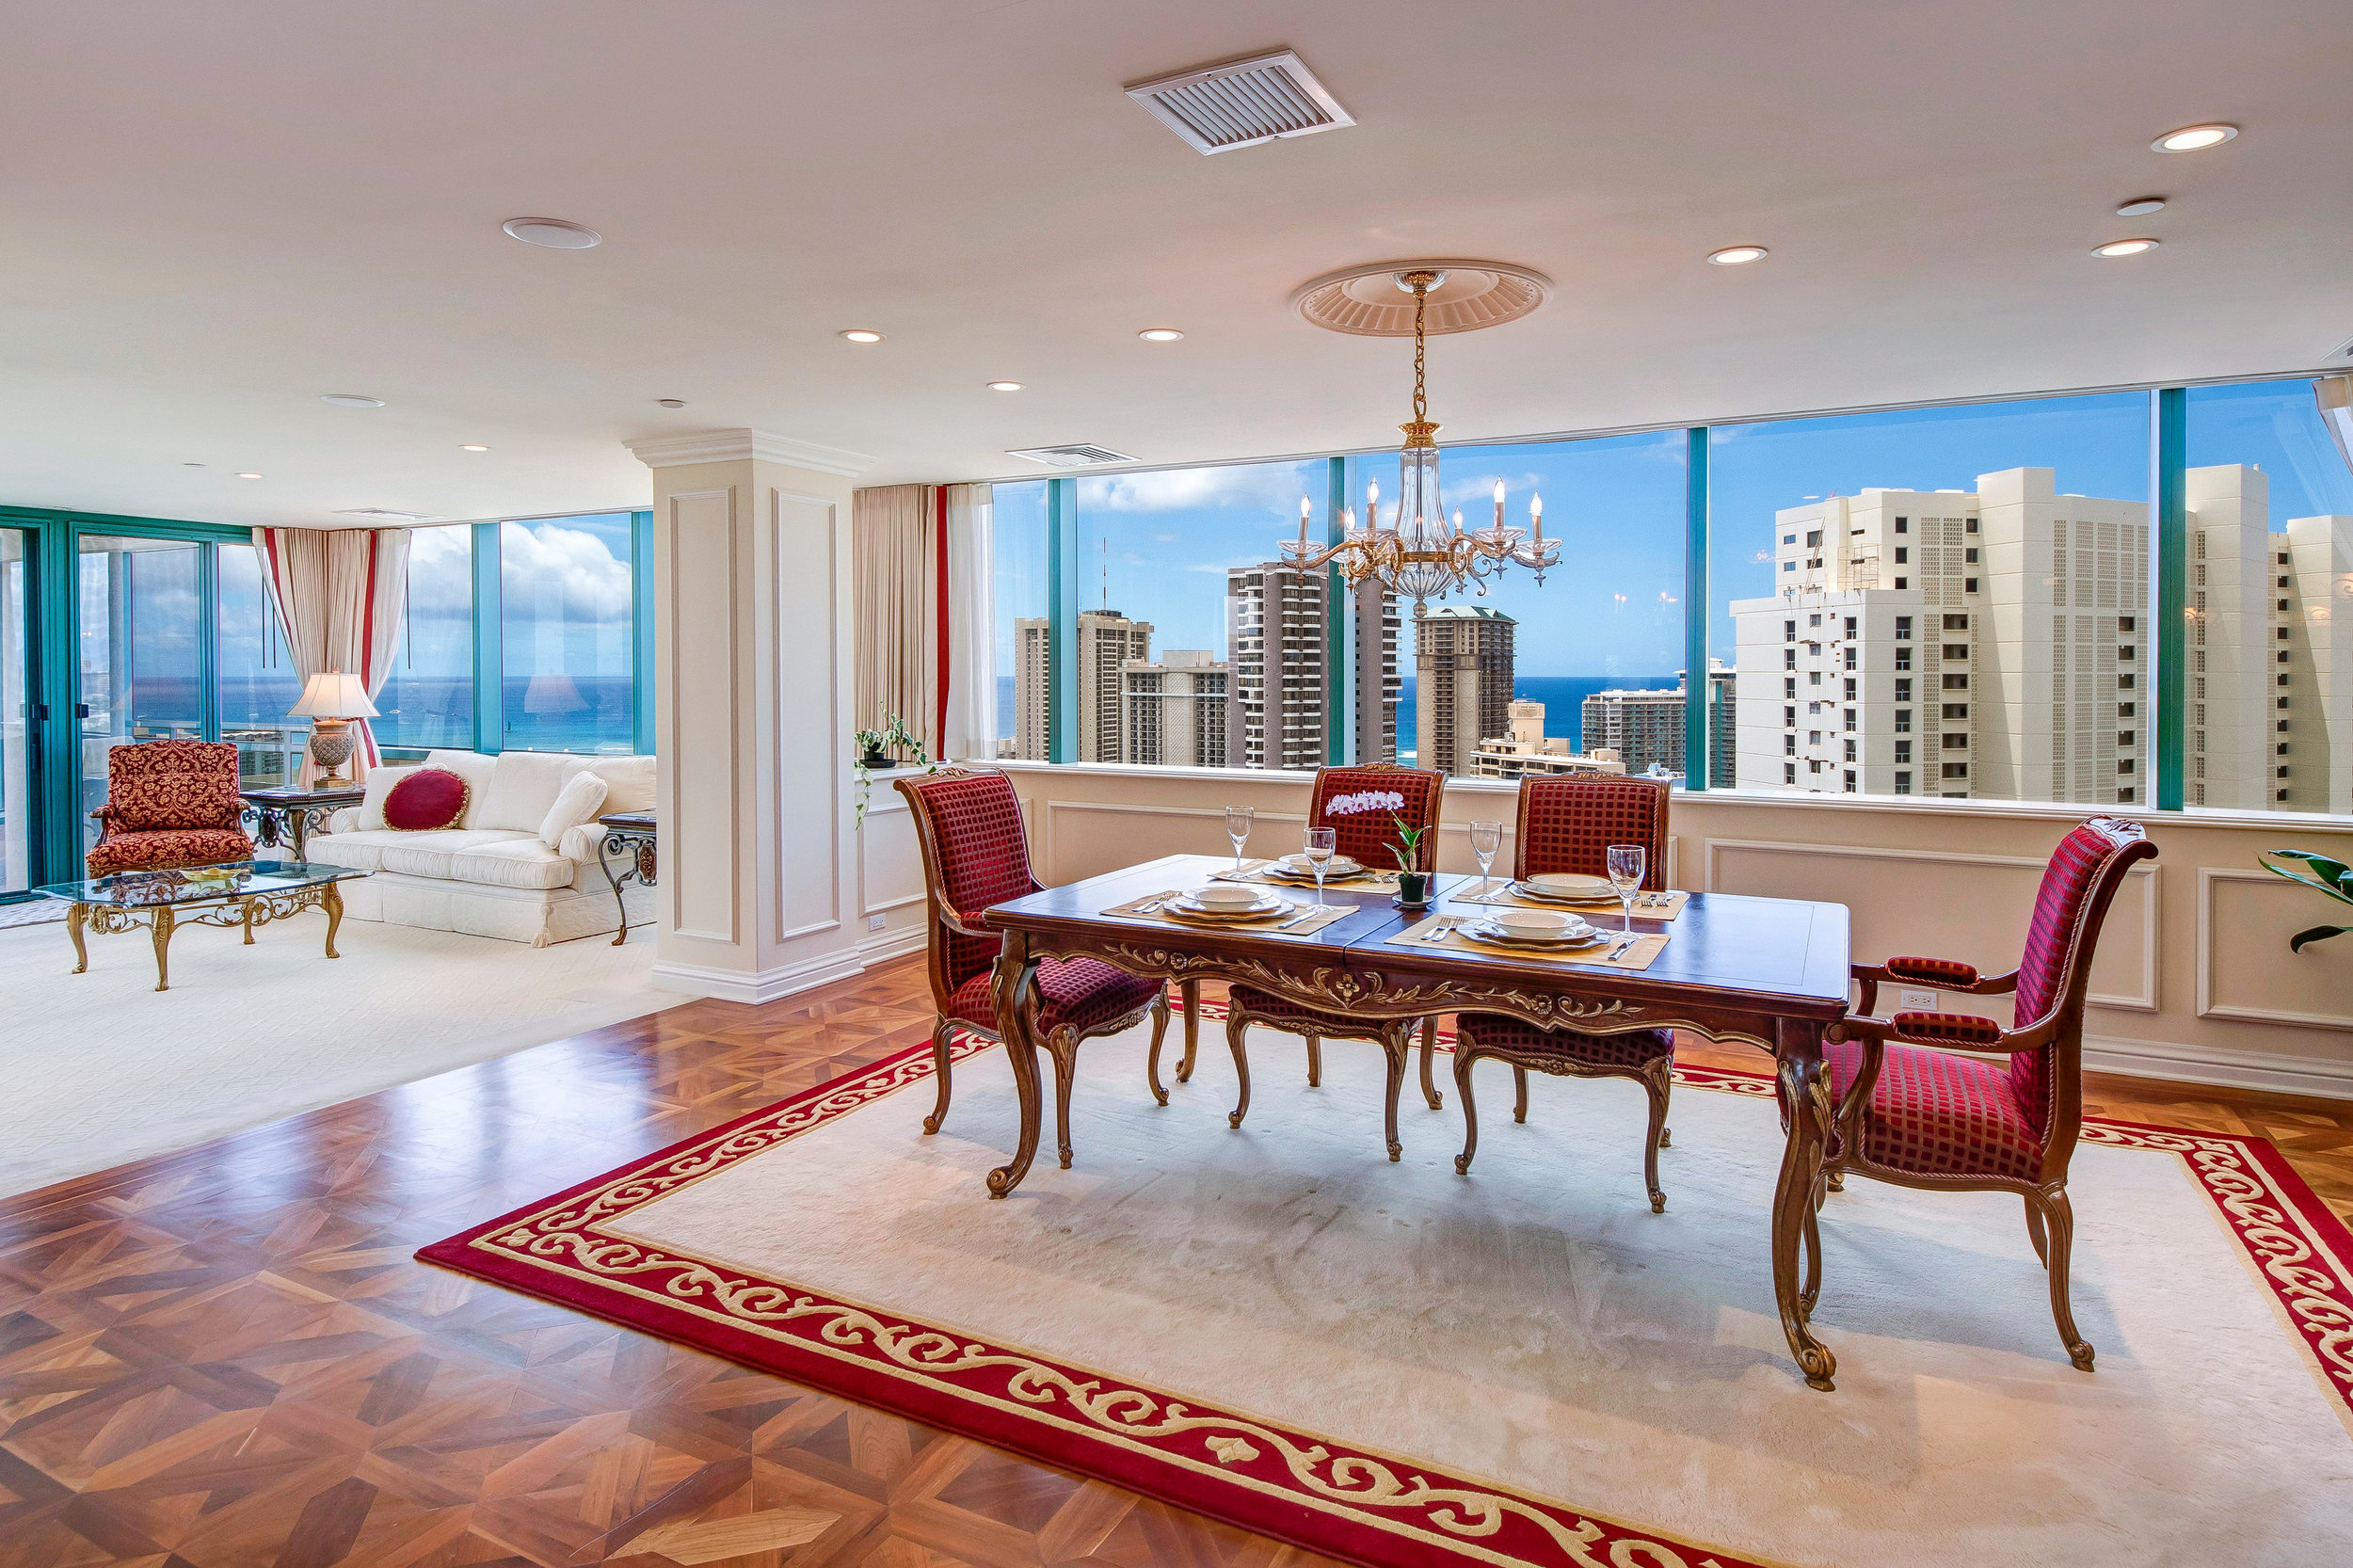 3 BDS OCEAN LUXURY PENTHOUSE   $18,000 / monthly - Contact us for special rates  FURNISHED  3 BEDROOMS  3 FULL BATHS  3,294 sq. ft.  Hawaii State License #: GE-080-506-4704-01, TA-080-506-4704-01